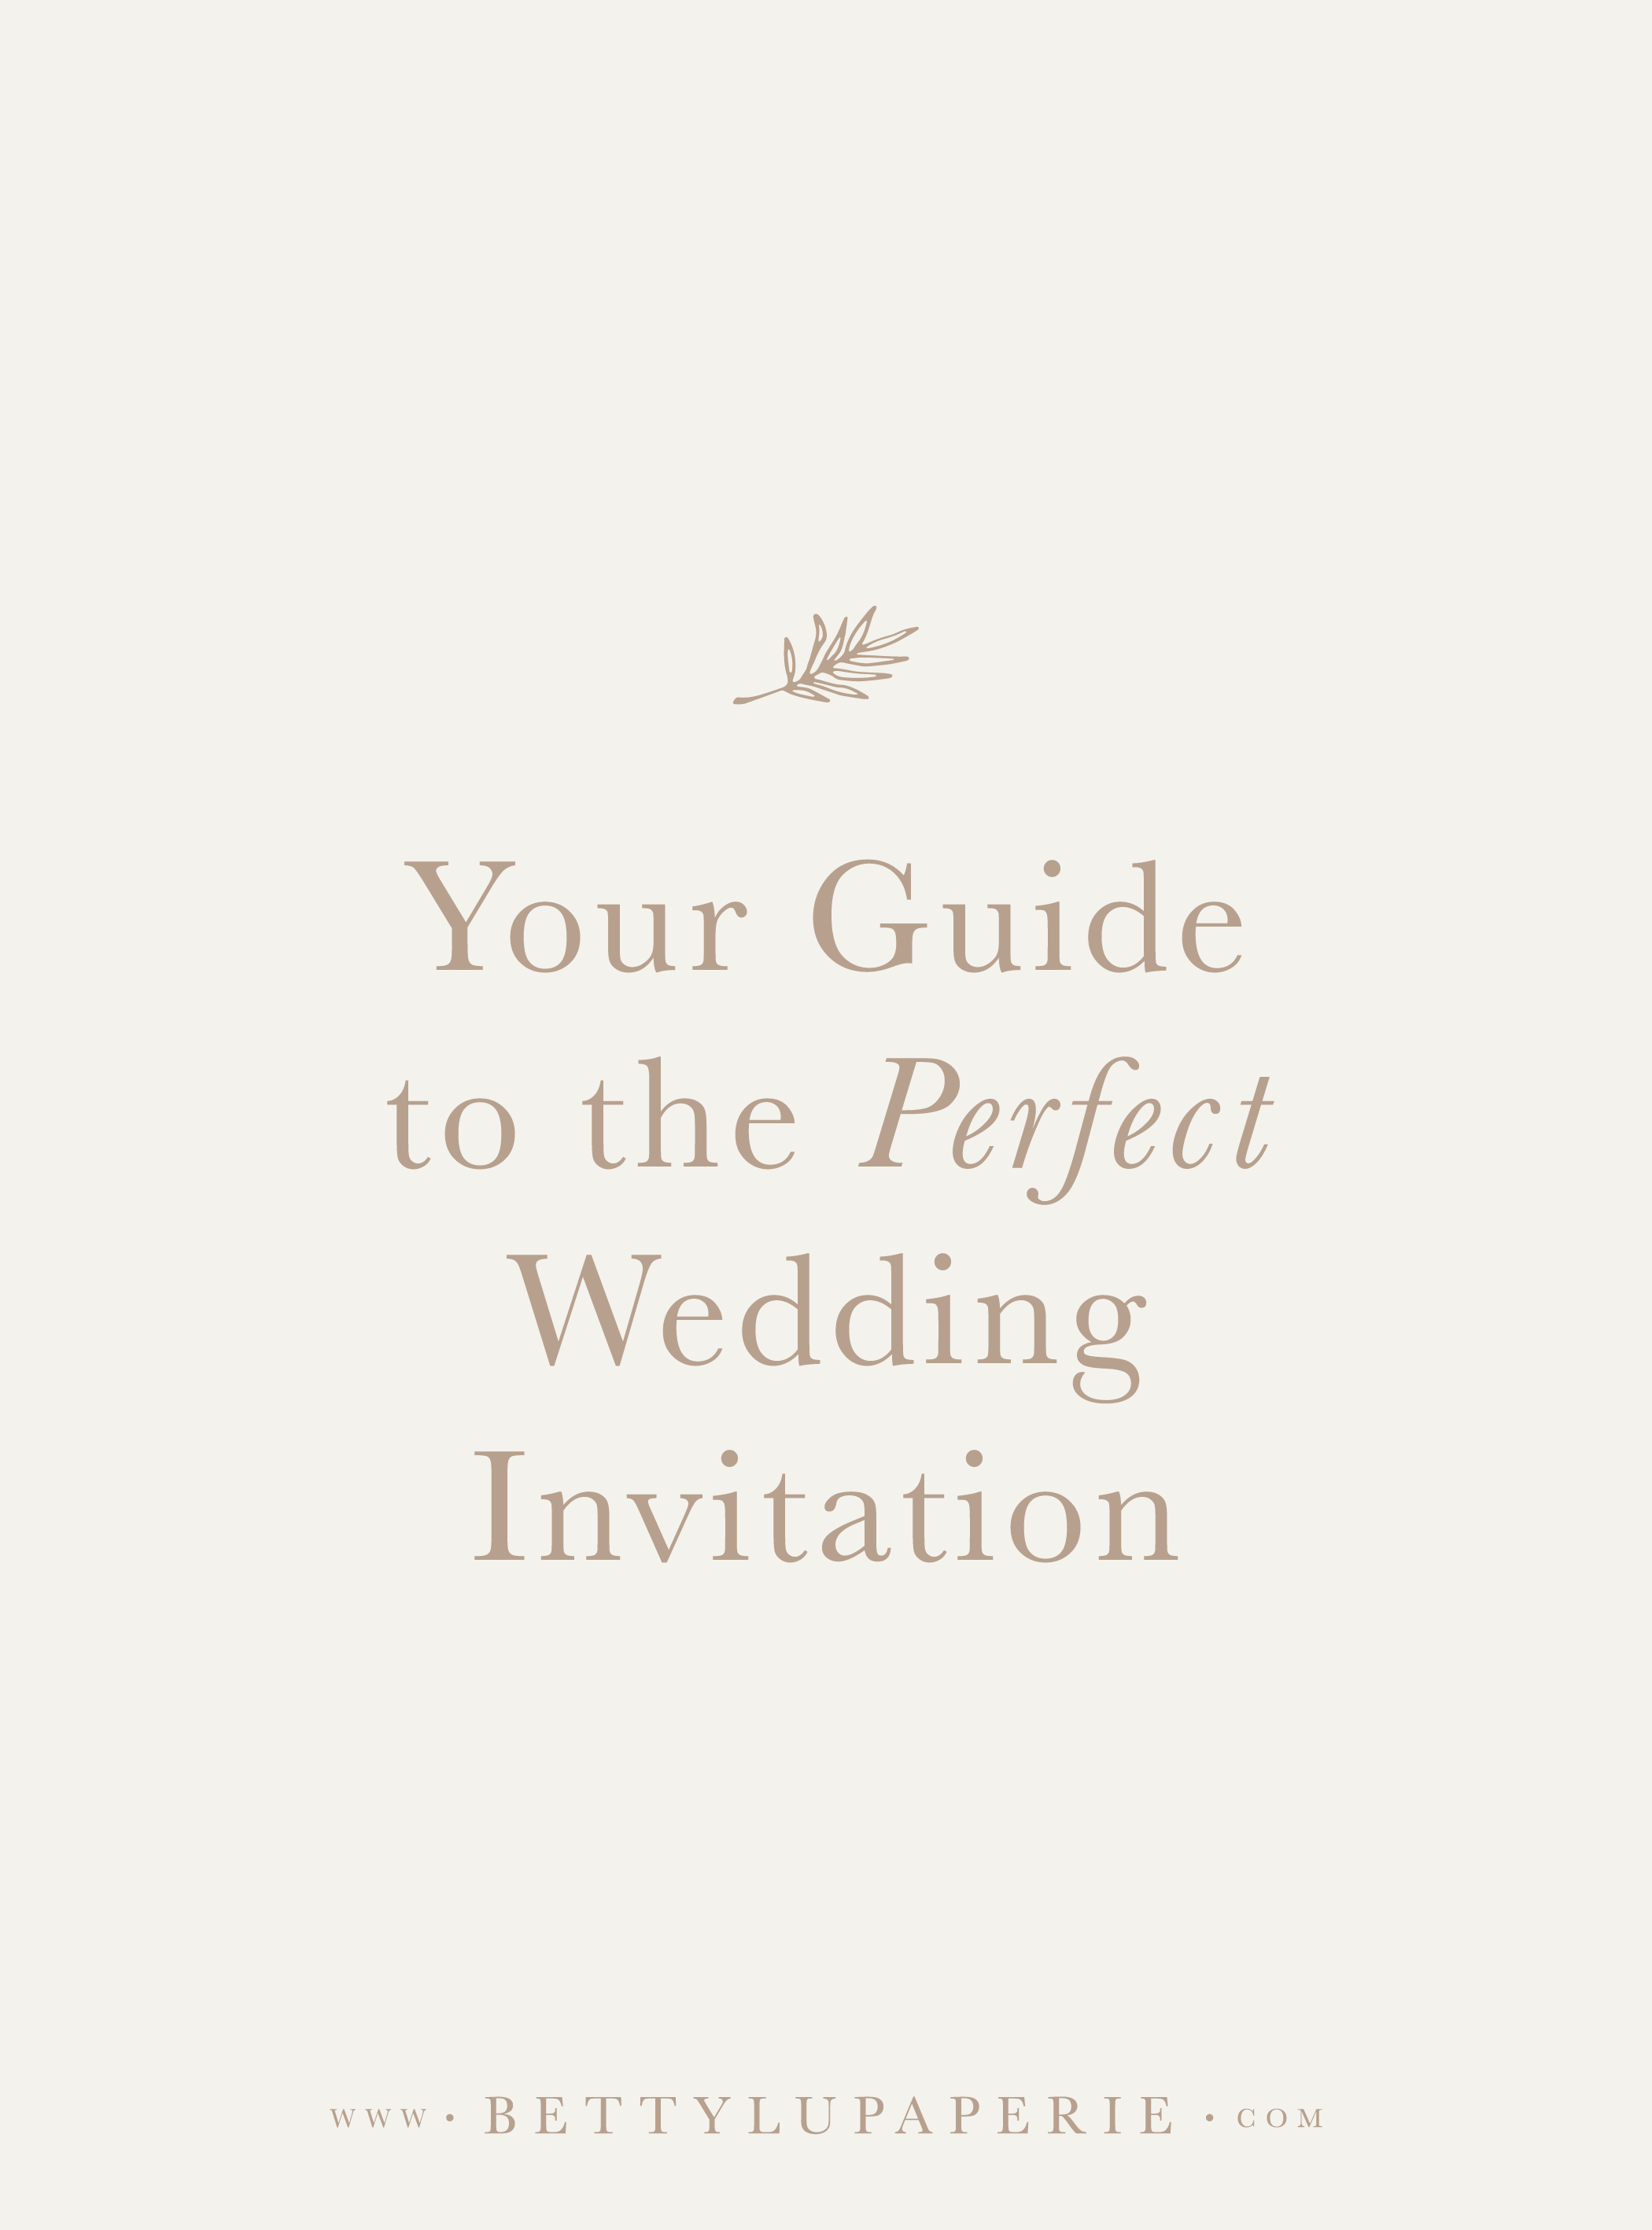 Wedding Invitation Wording.png